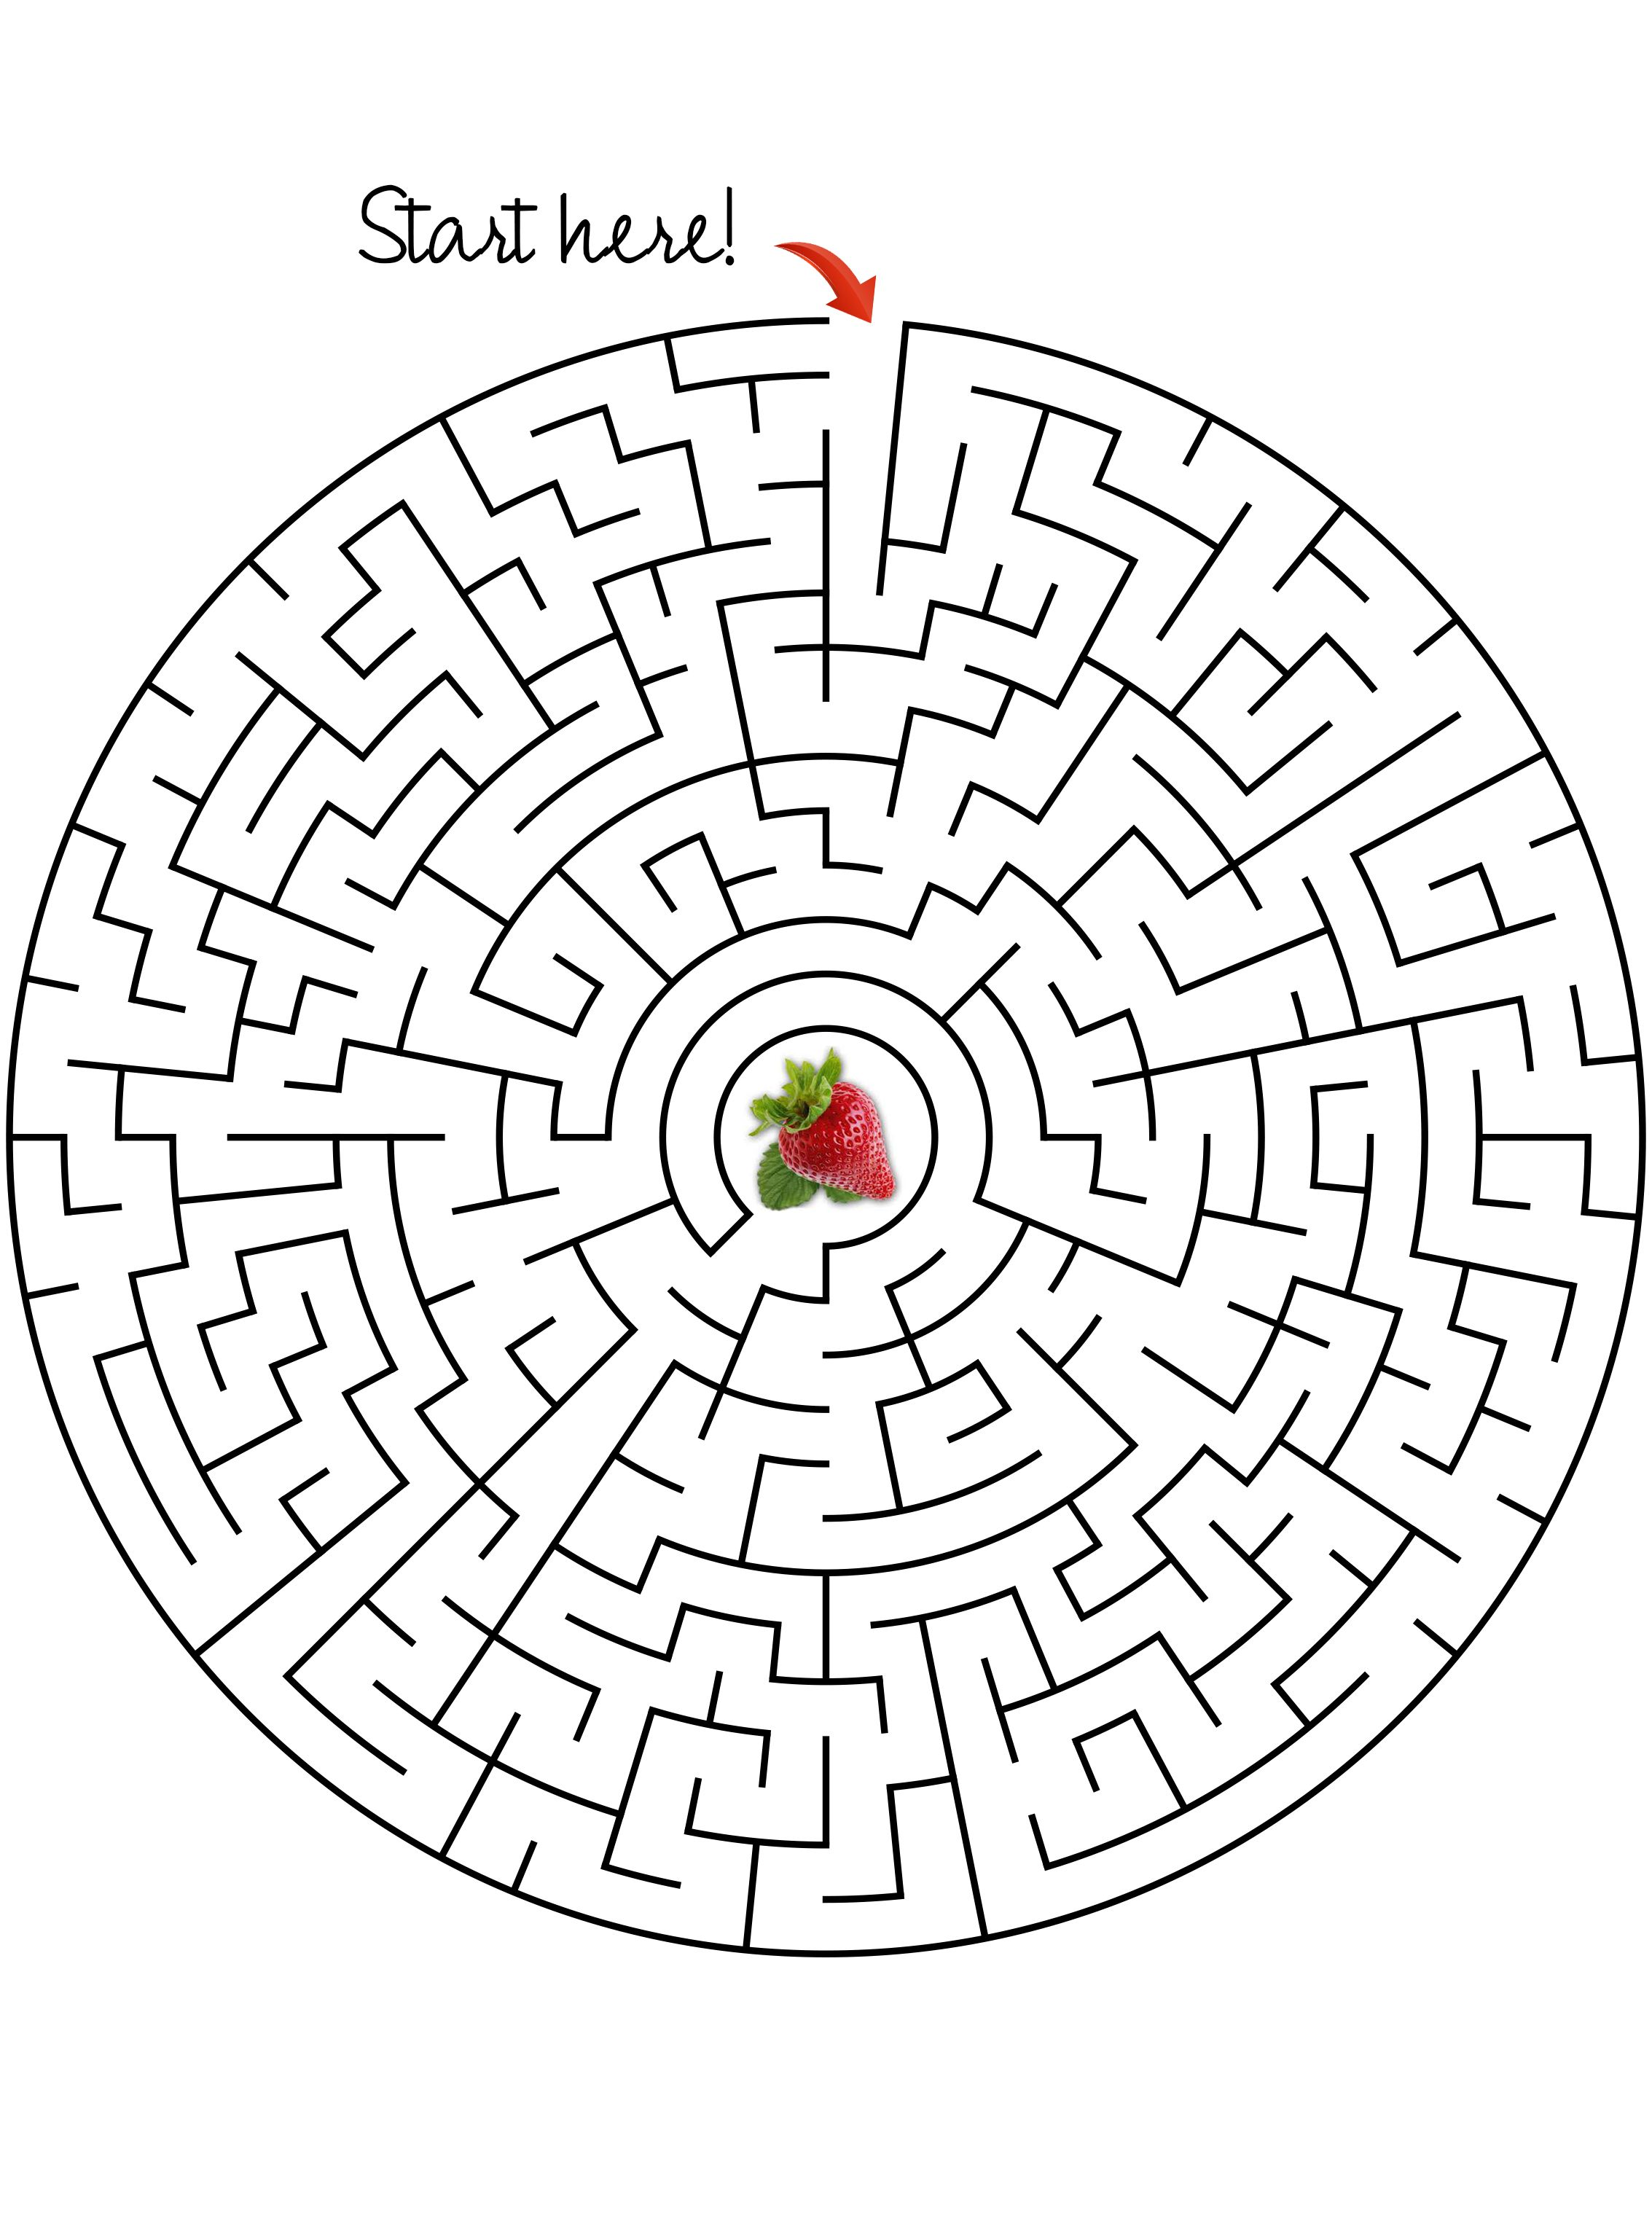 Maze Get The Strawberry Moderate